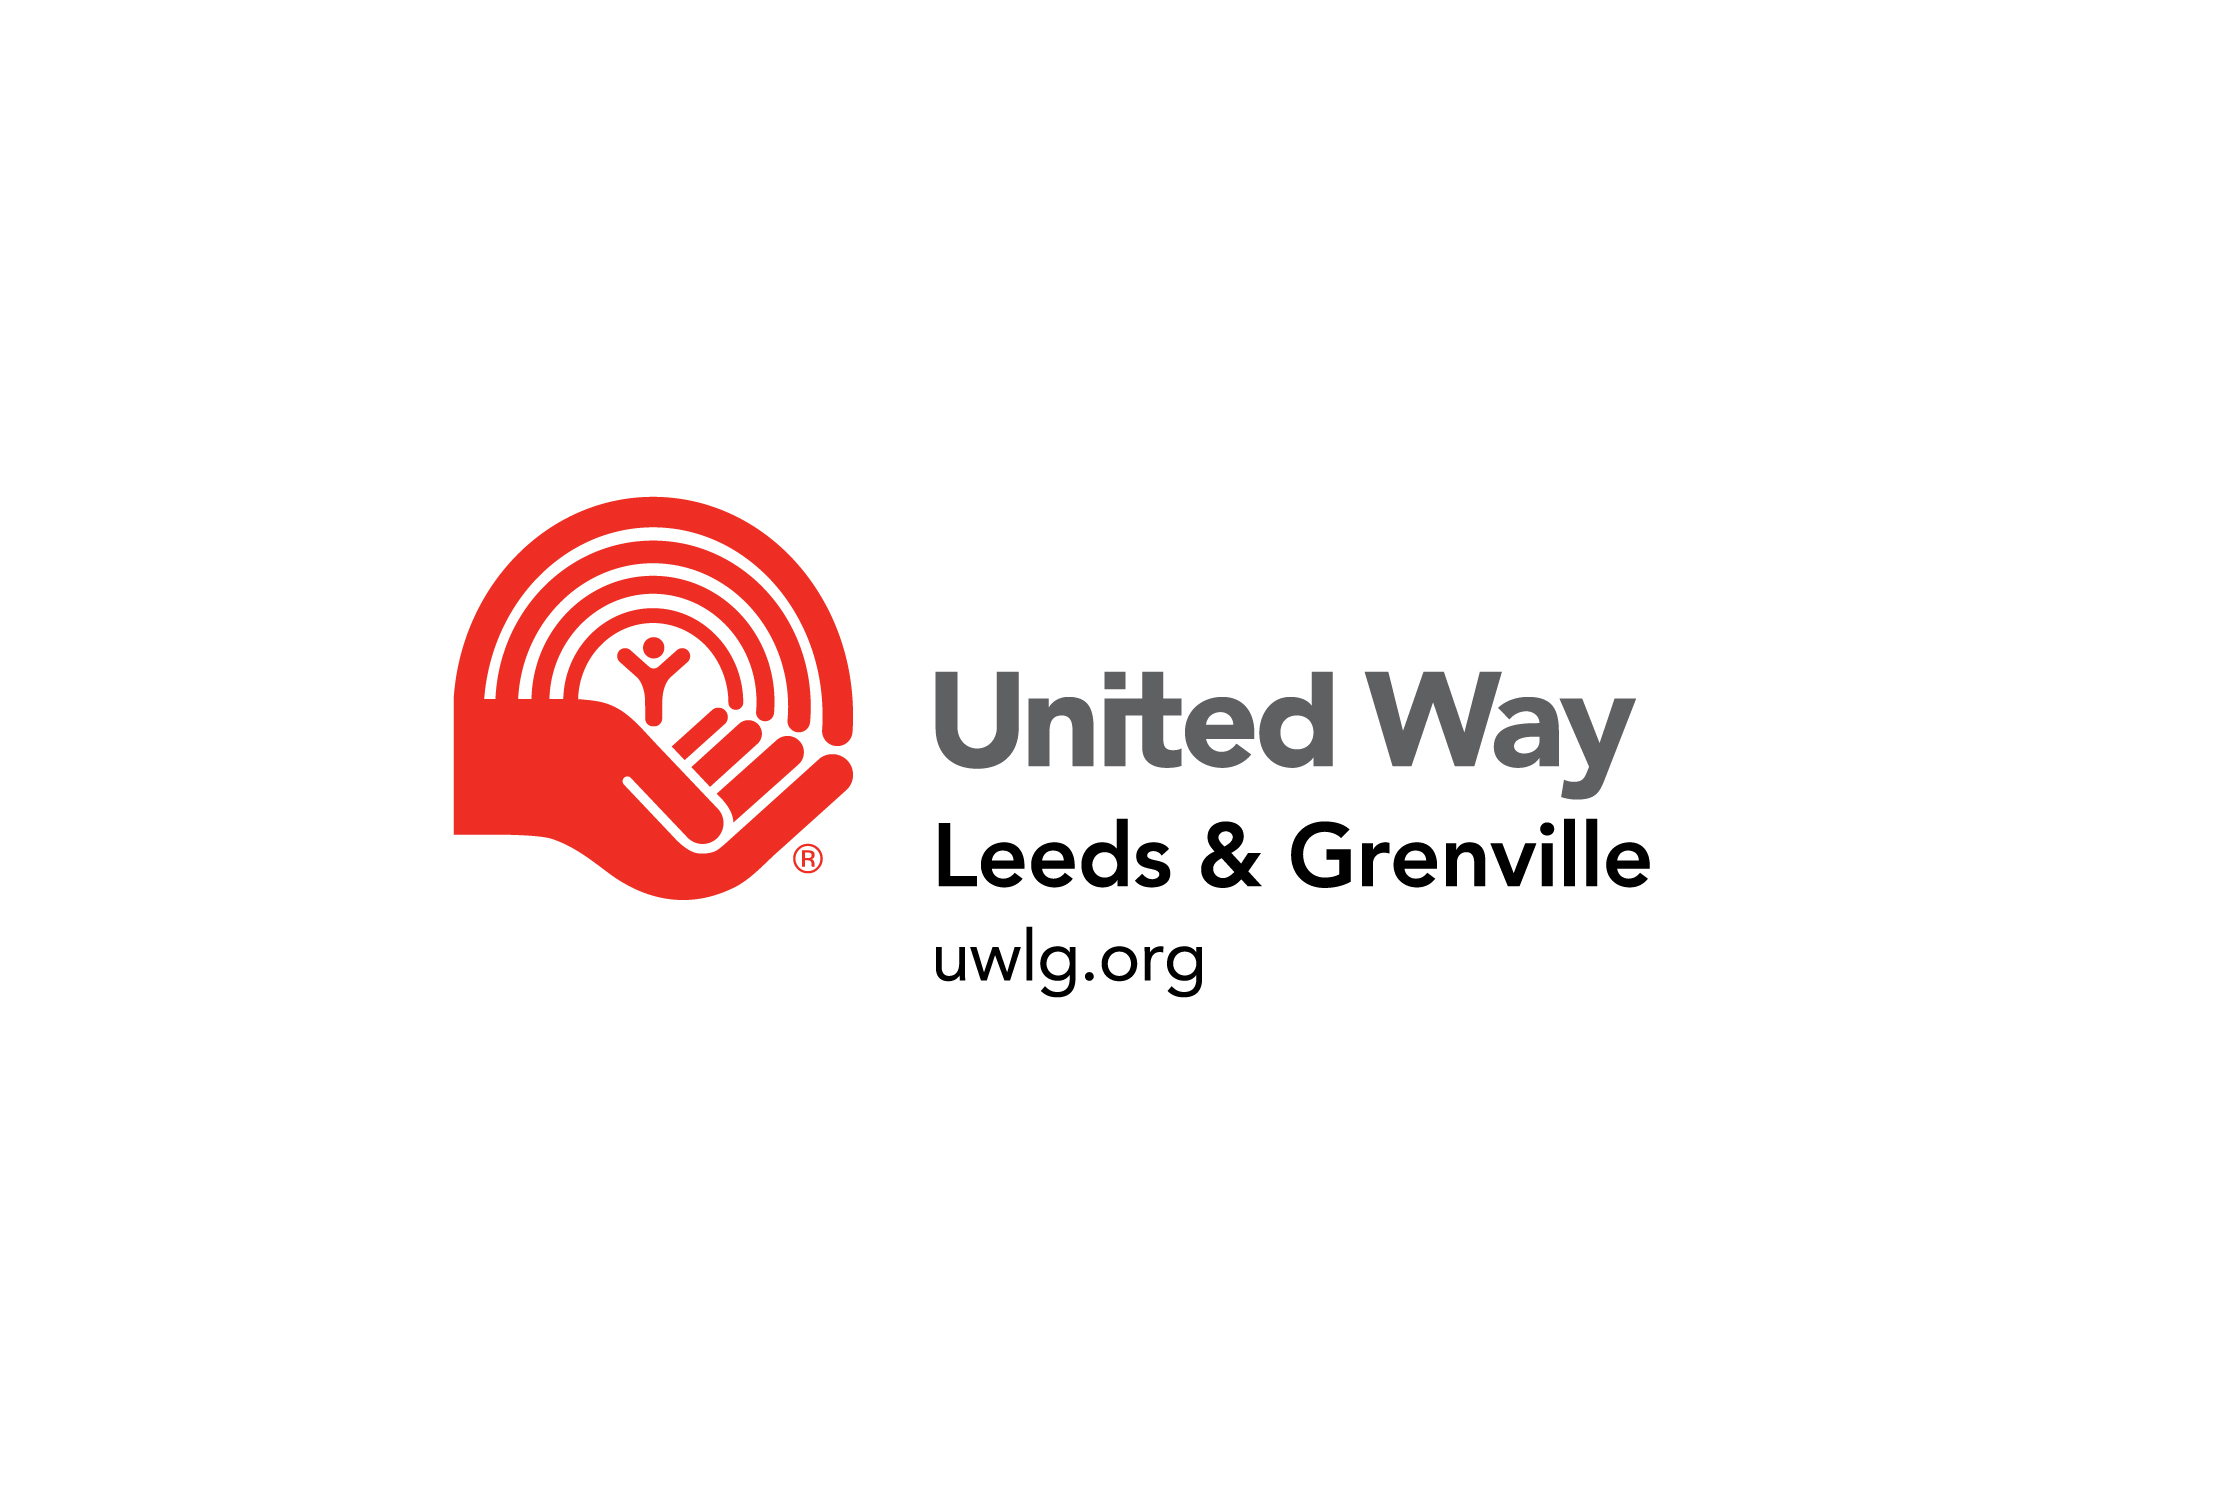 United Way Leeds & Grenville